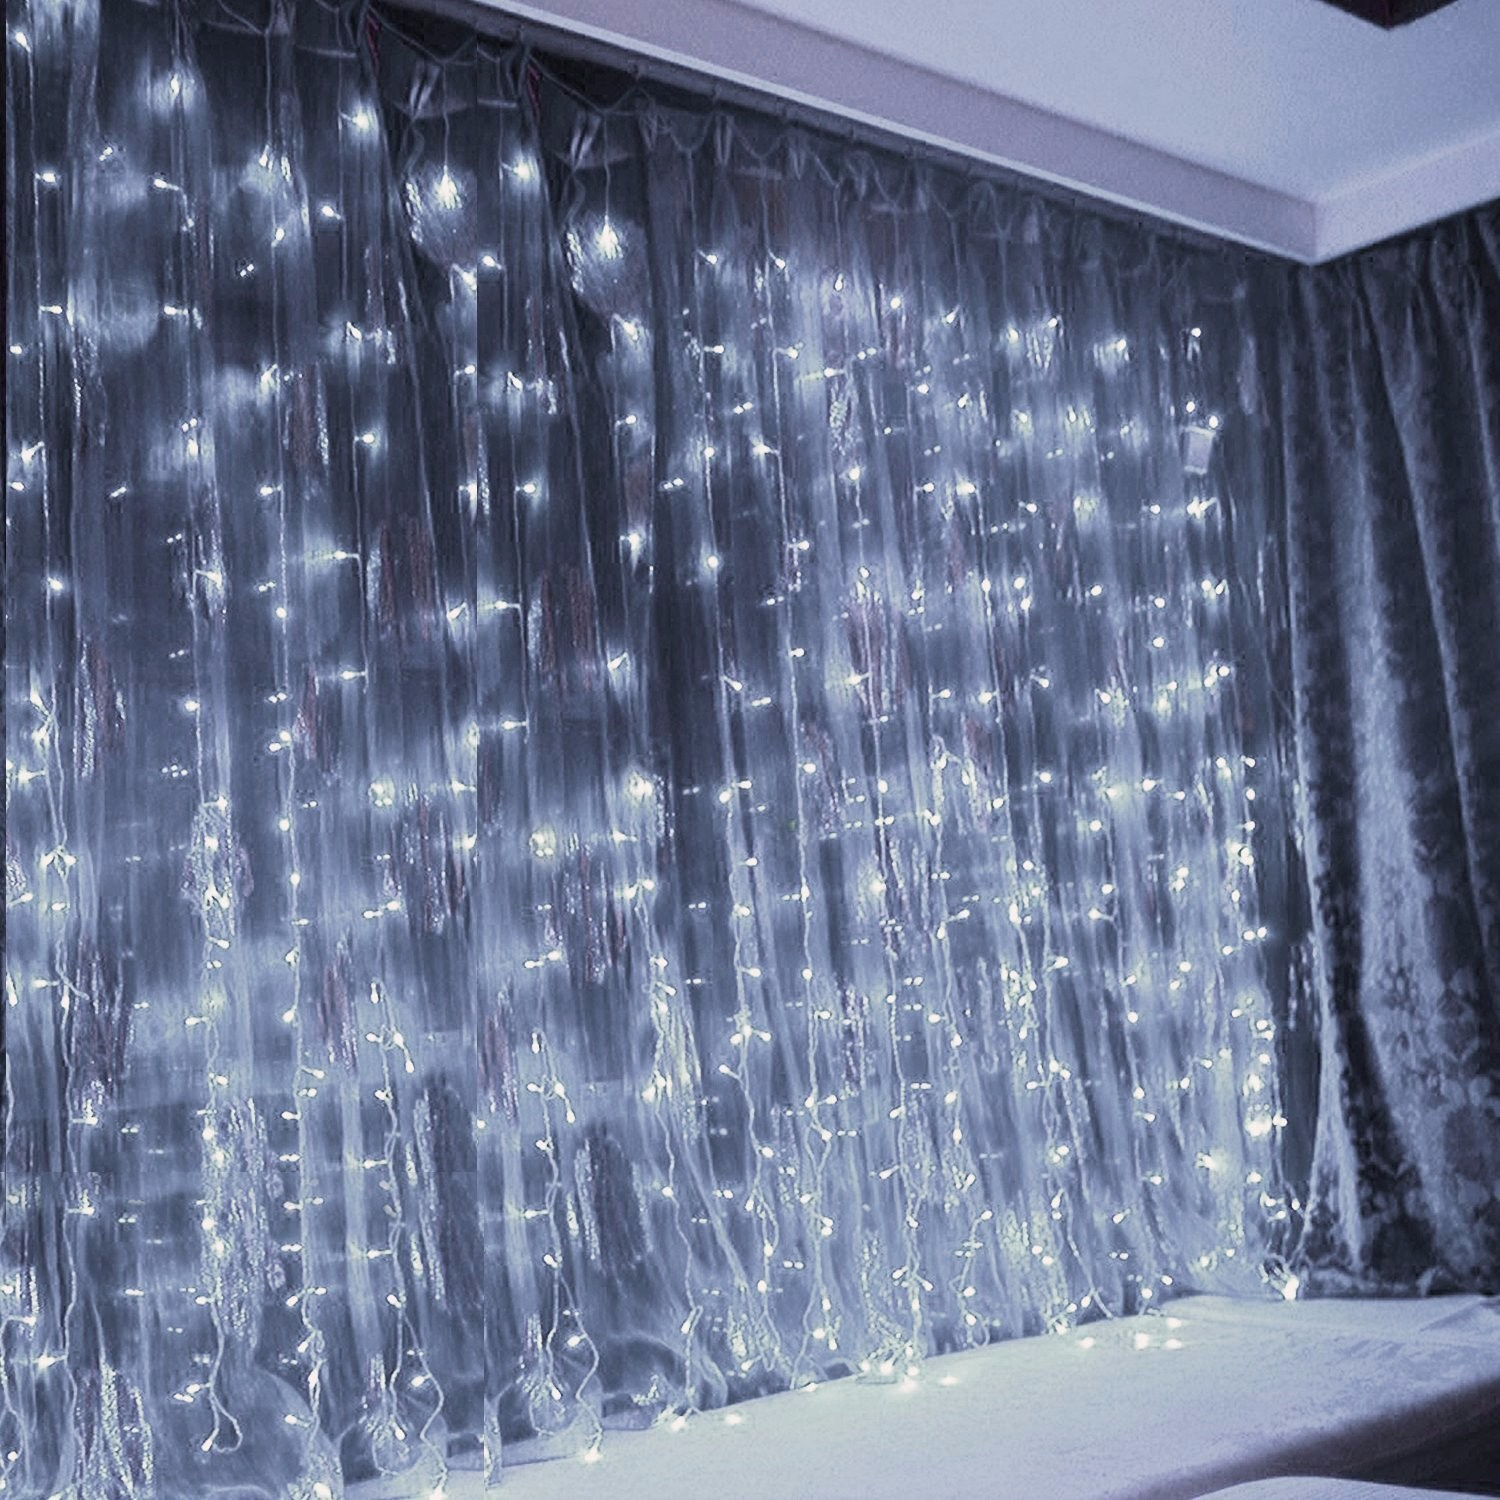 TORCHSTAR 19.7ft x 9.8ft LED Curtain Lights, Starry Christmas String Light, Indoor Decoration for Festival, Wedding, Party, Living Room, Bedroom, Daylight